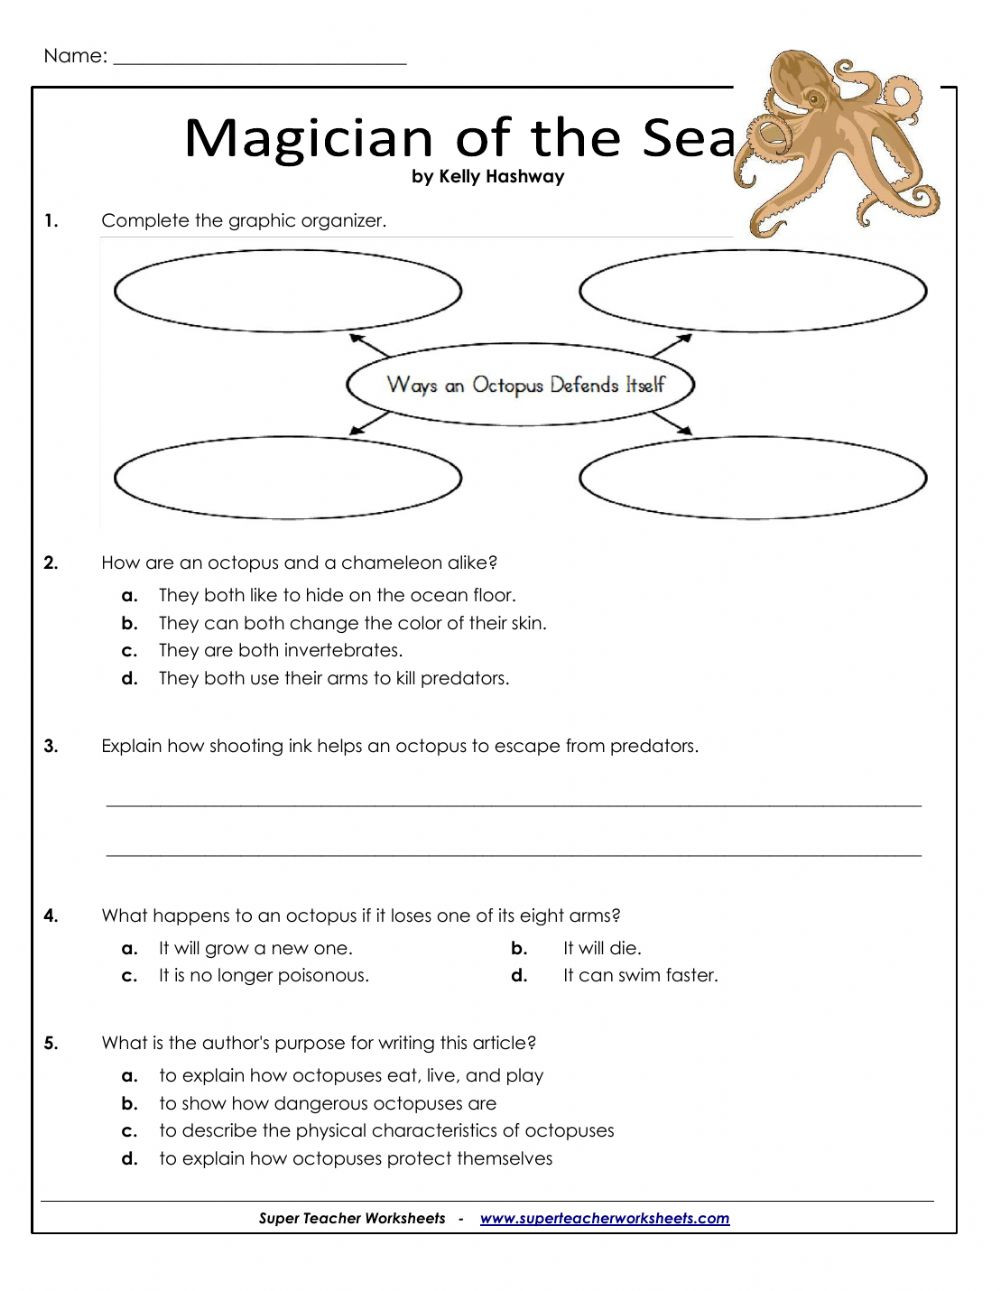 Ocean Floor Worksheets 5th Grade Magician Of the Sea Interactive Worksheet